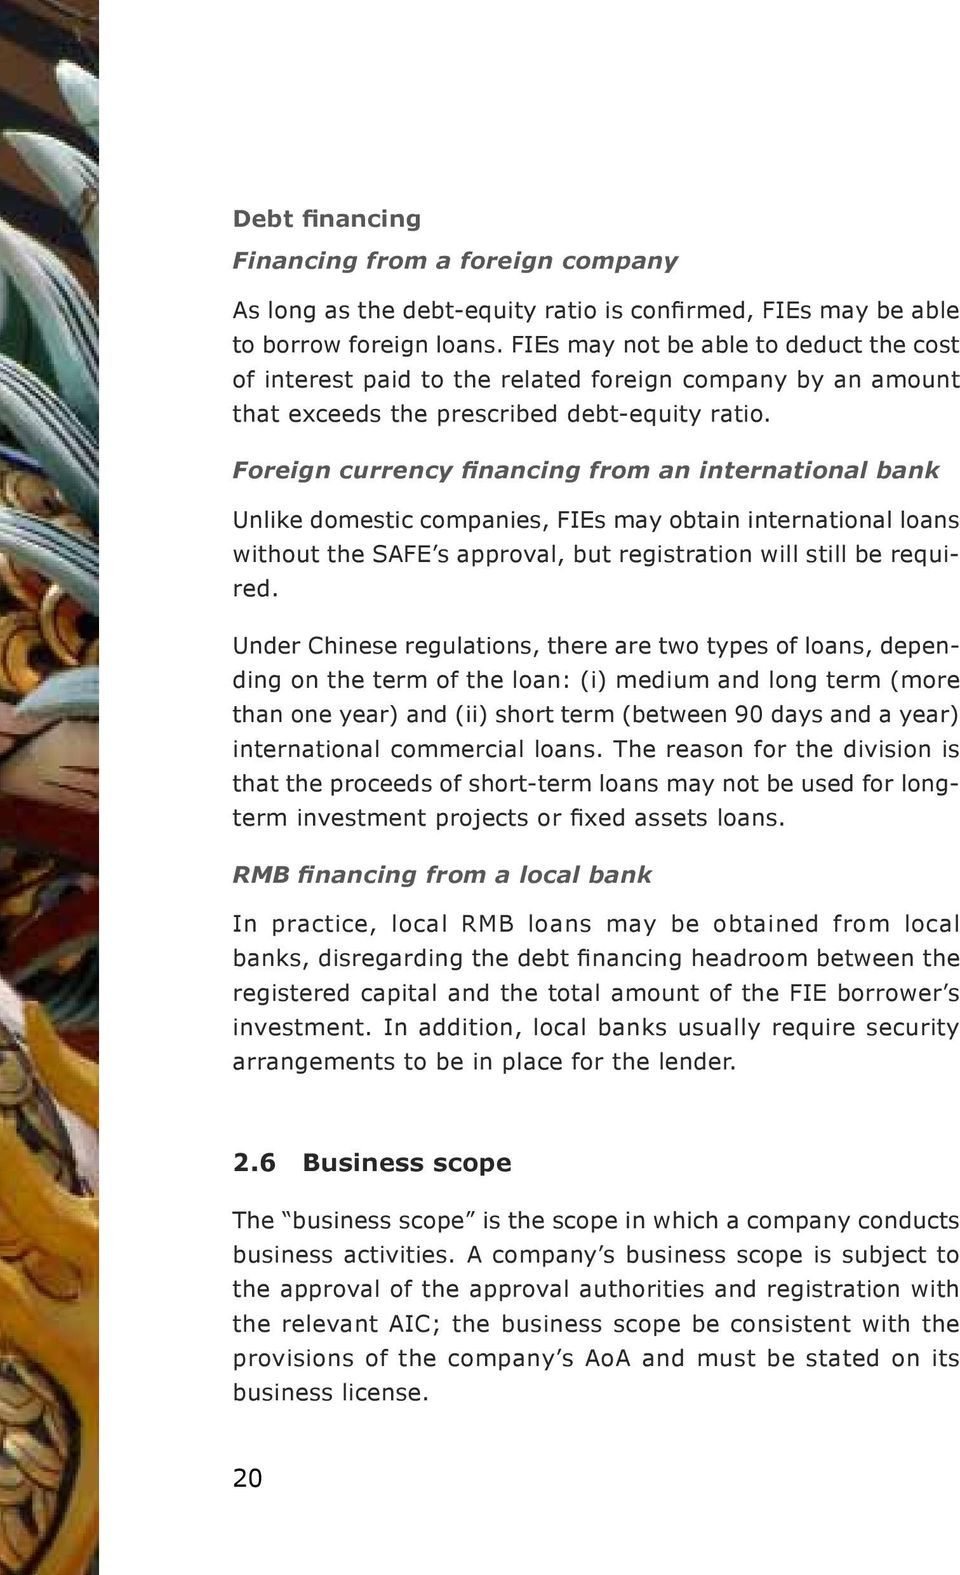 Foreign currency financing from an international bank Unlike domestic companies, FIEs may obtain international loans without the SAFE s approval, but registration will still be required.